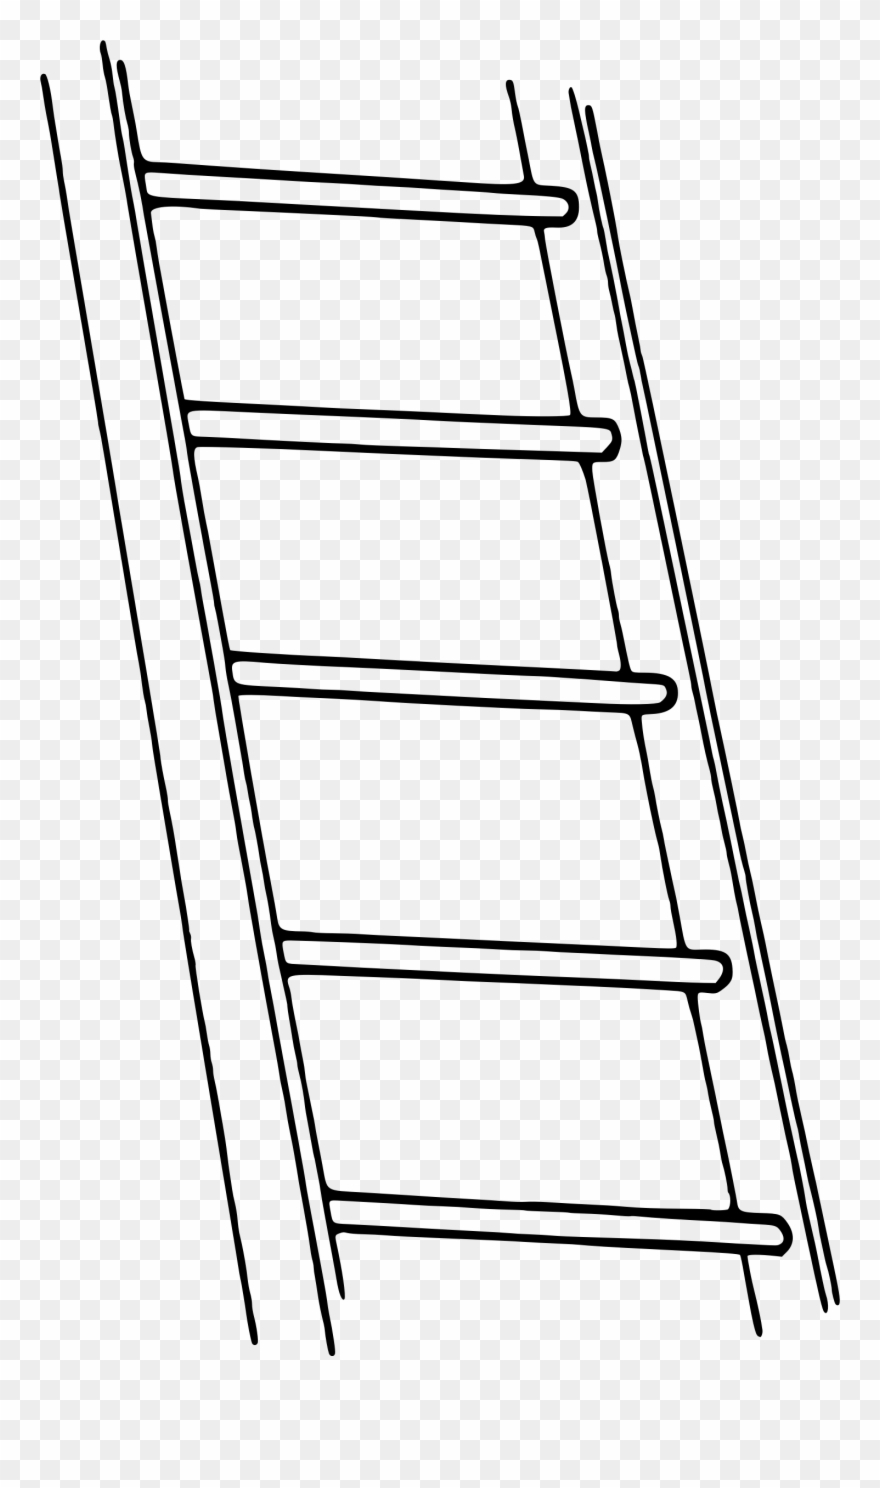 Ladder black and white clipart banner free library Ladder Clipart Black And White - Png Download (#277170 ... banner free library